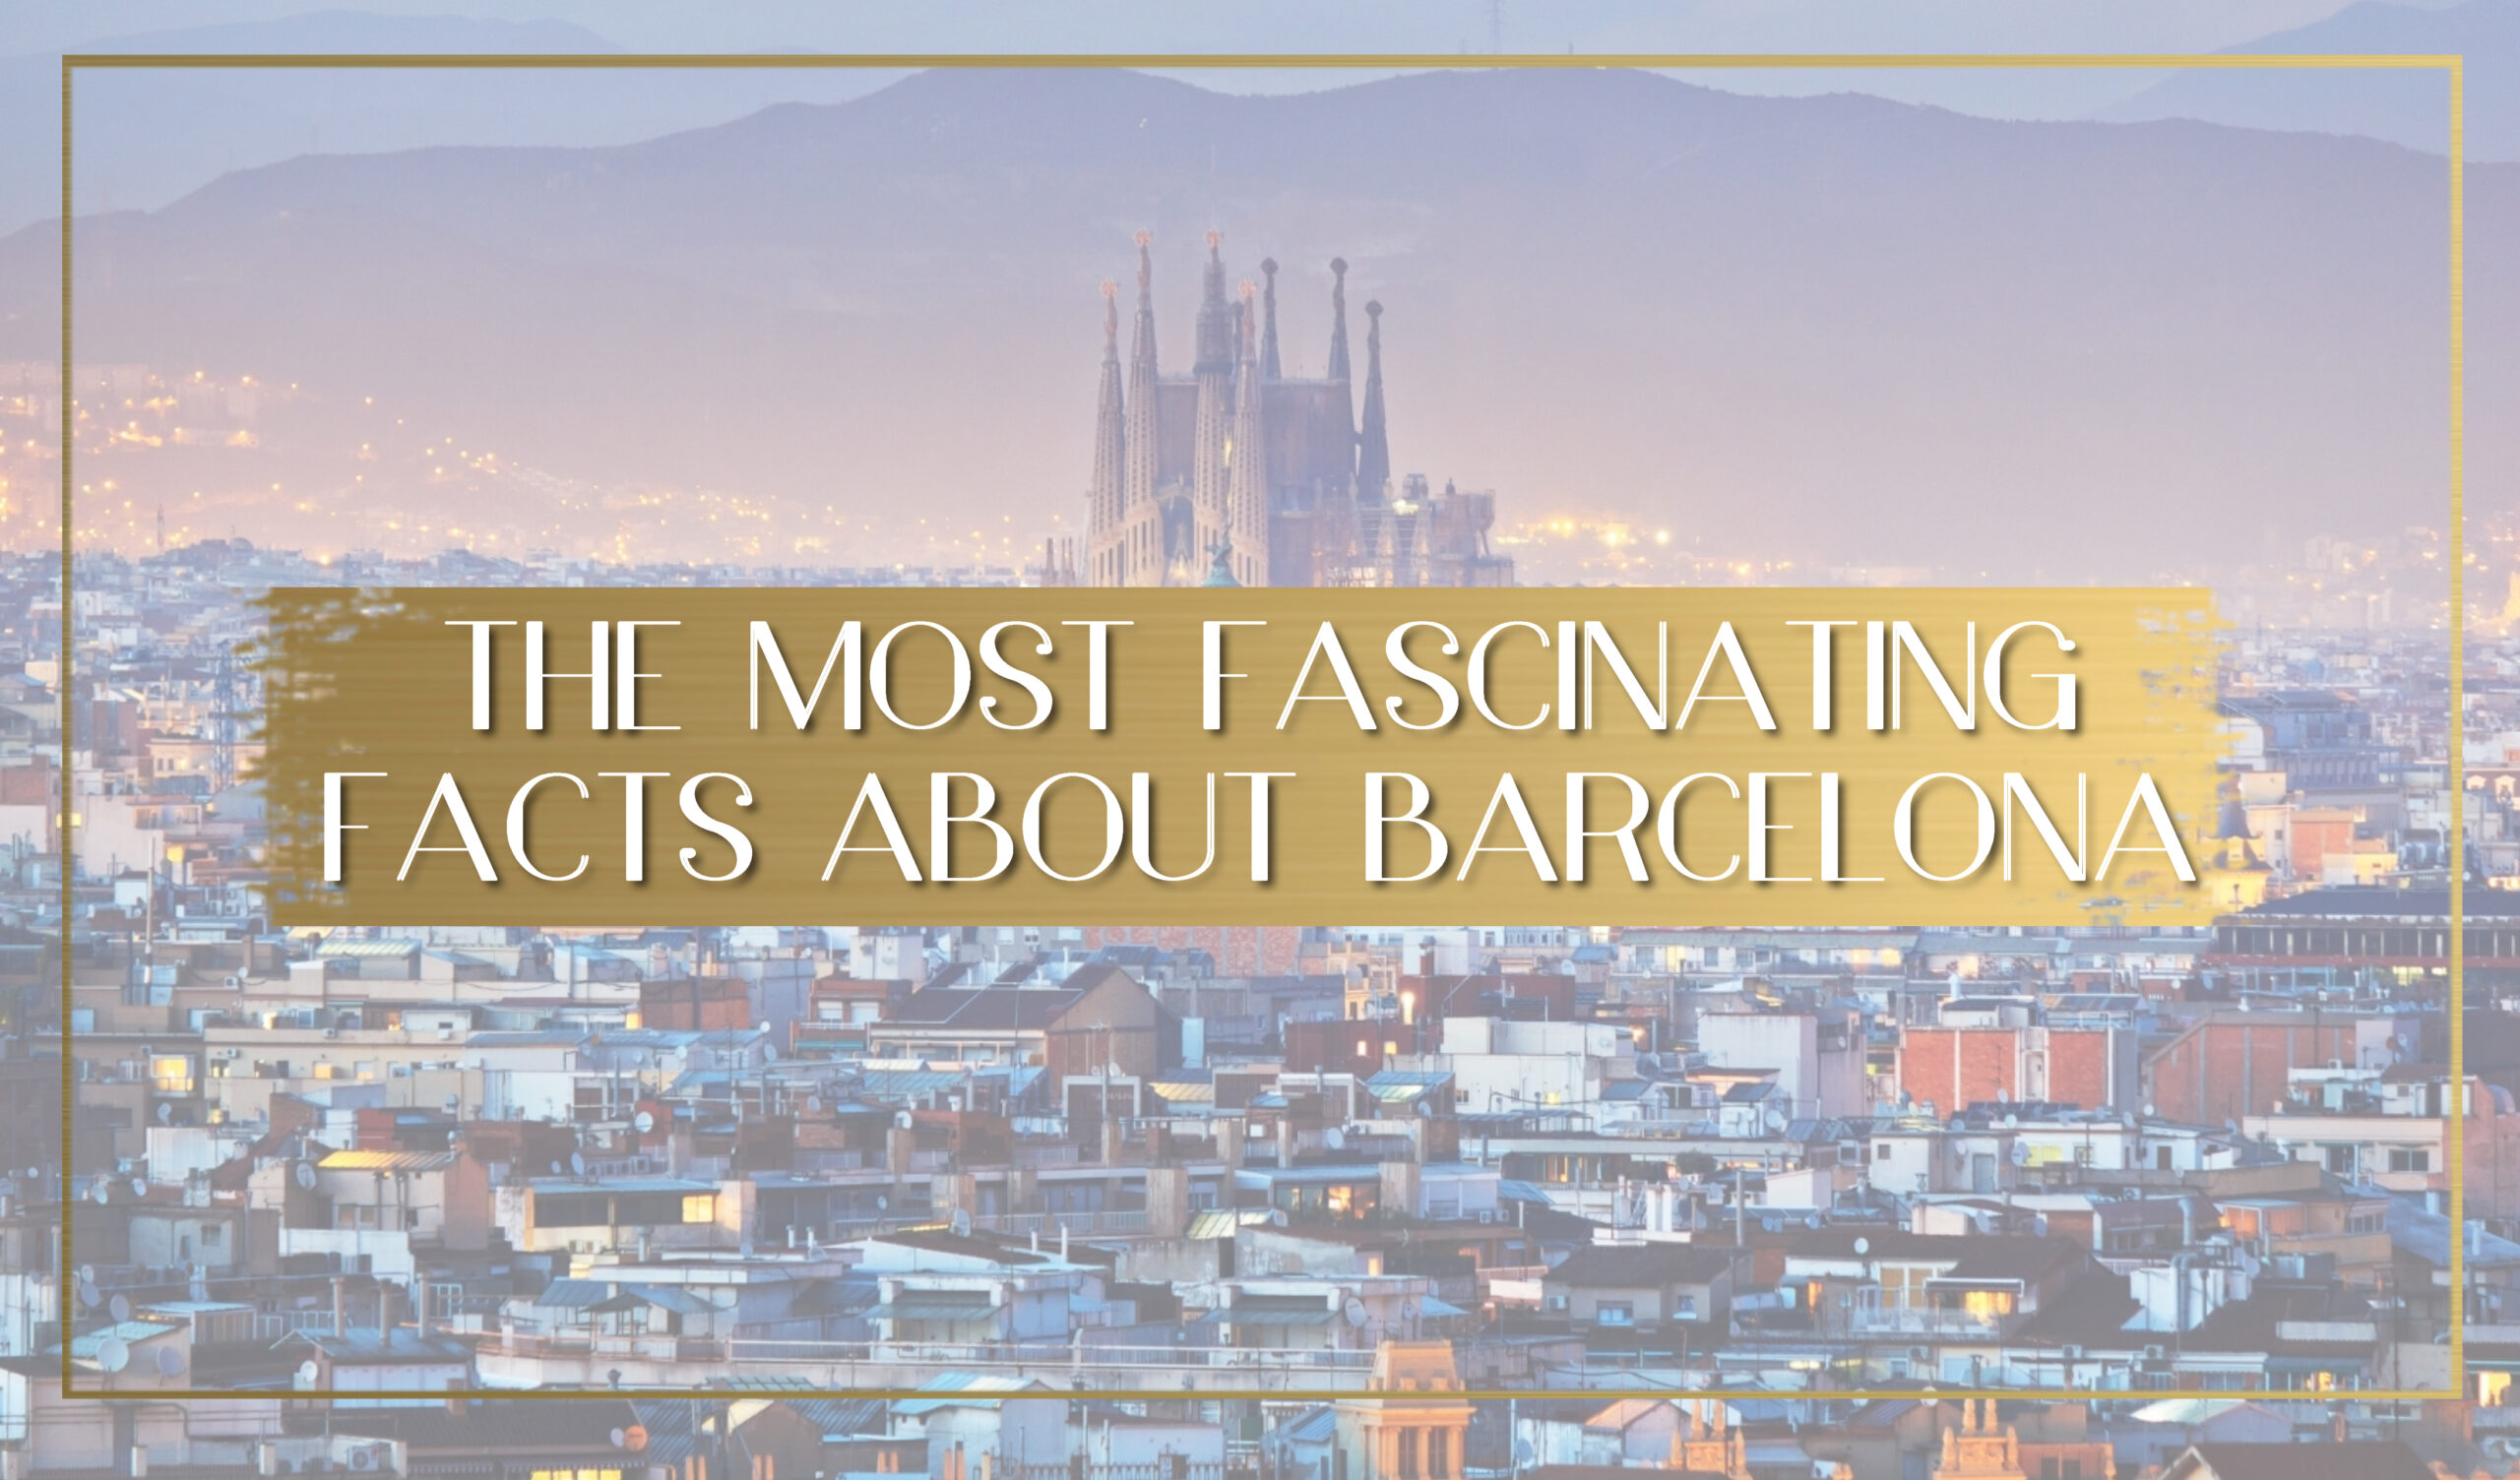 Facts about Barcelona main